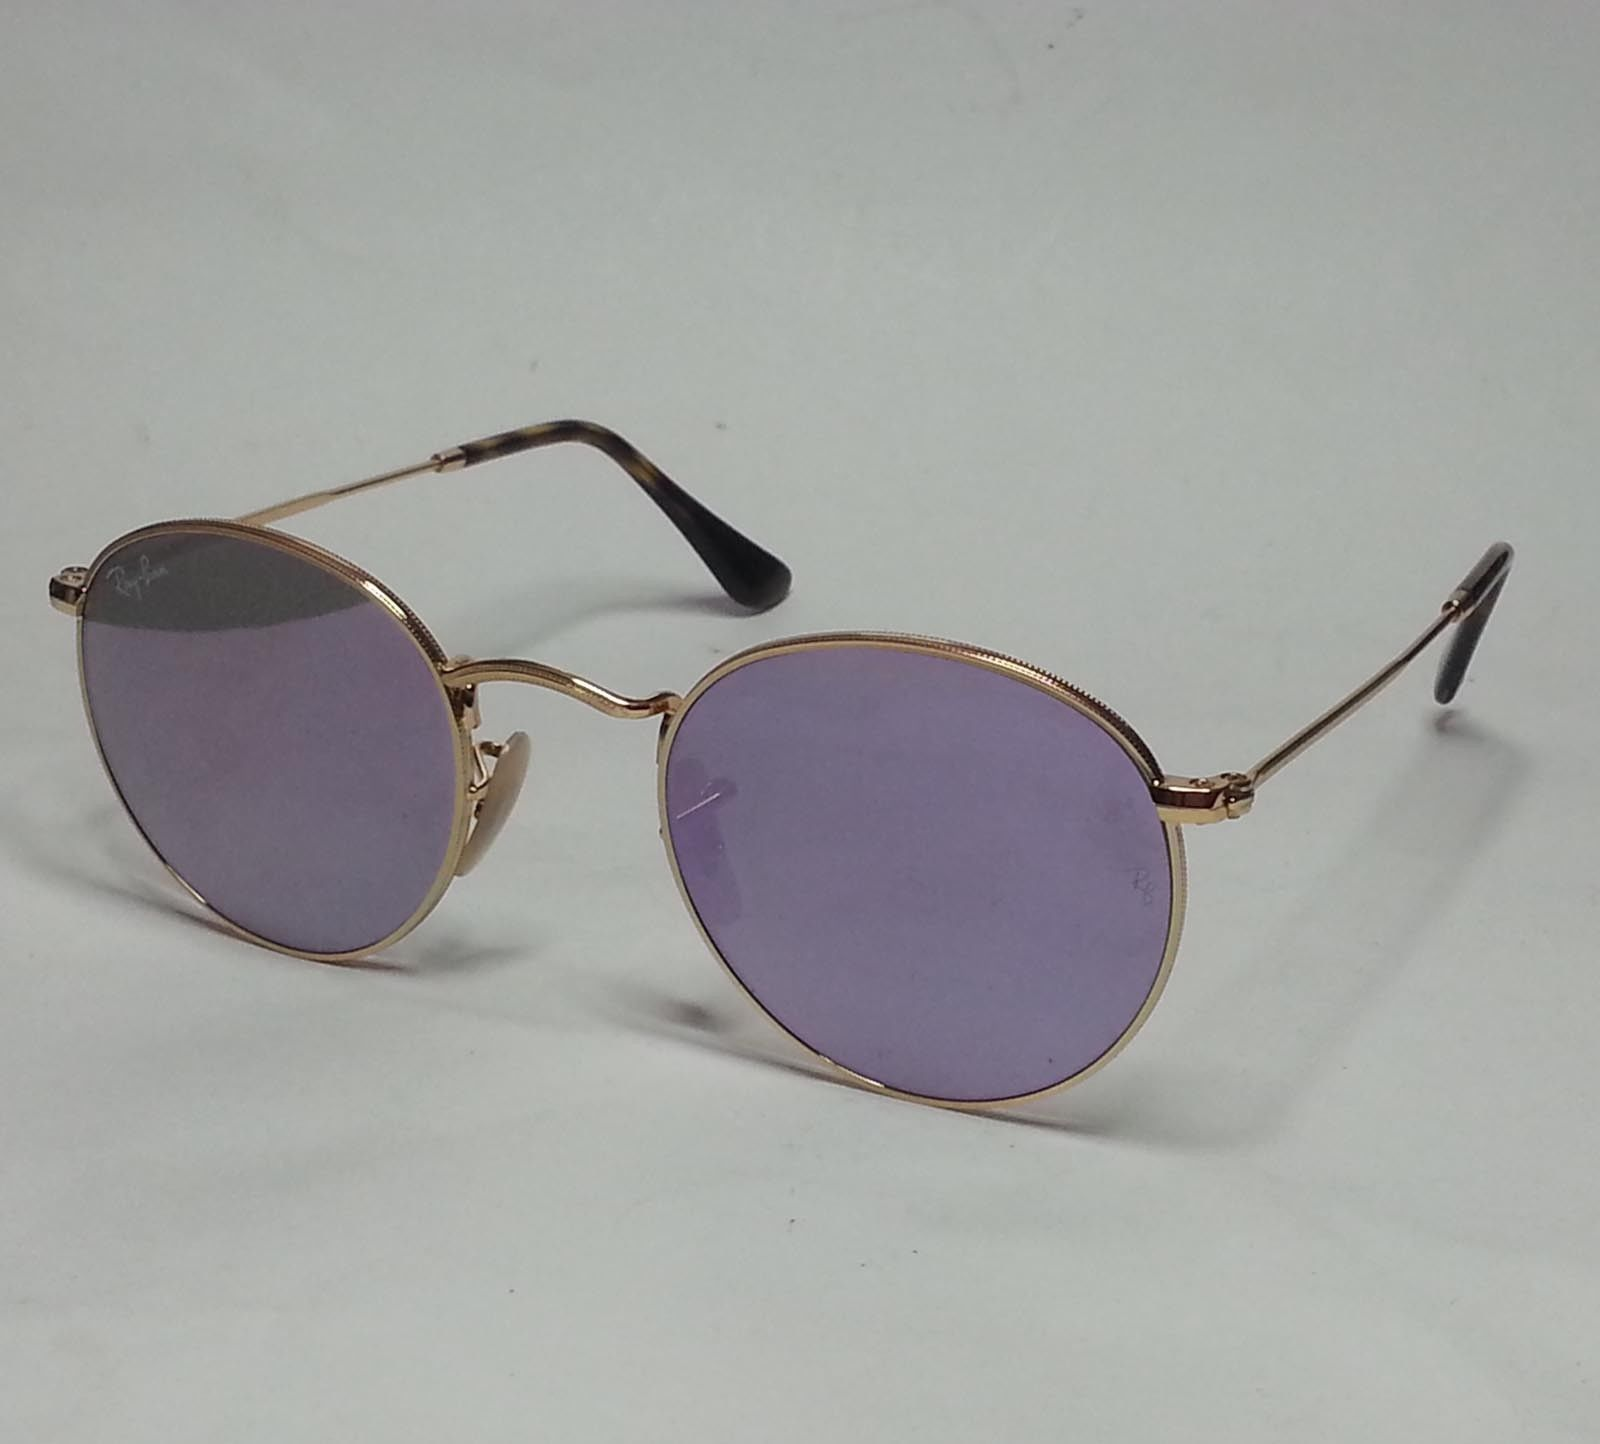 e58106143aec  men Ray-Ban Men sunglasses RB 3447 Round Metal Gold Frame Purple Mirrored  Lens